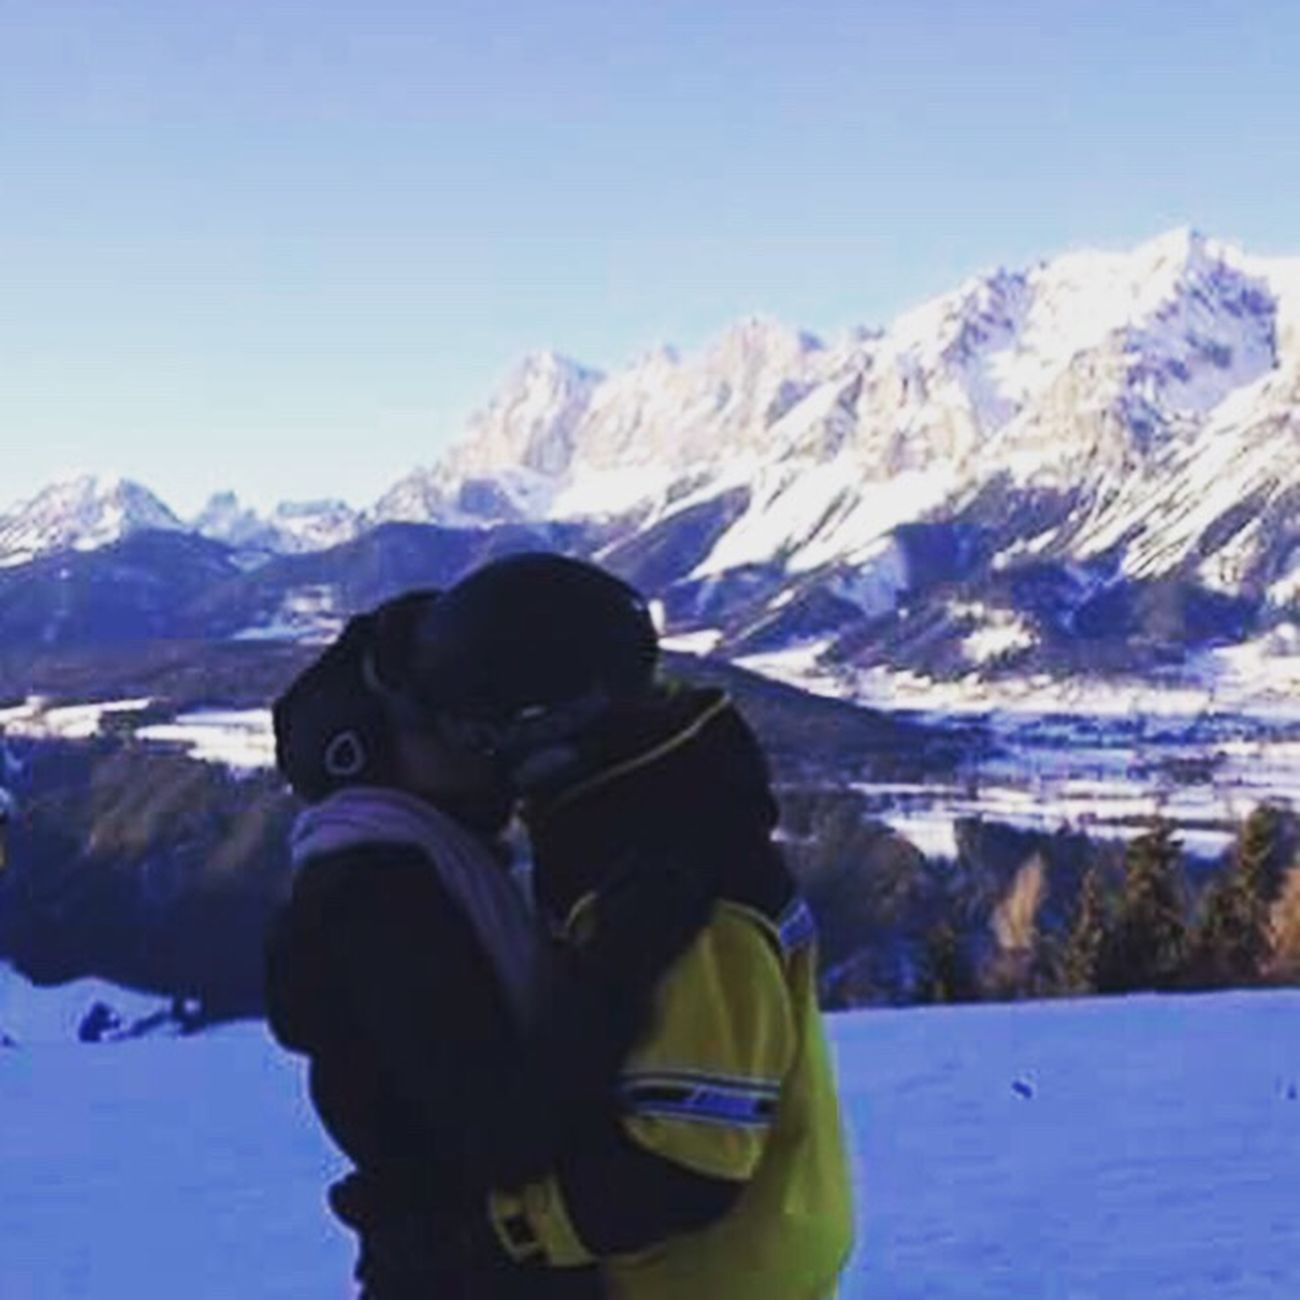 Die Liebe Meines Lebens Two People Mountain Snow Winter Cold Temperature Adventure Togetherness Big Love Ich Liebe Dich ! Followme New Account Follow4follow Follow